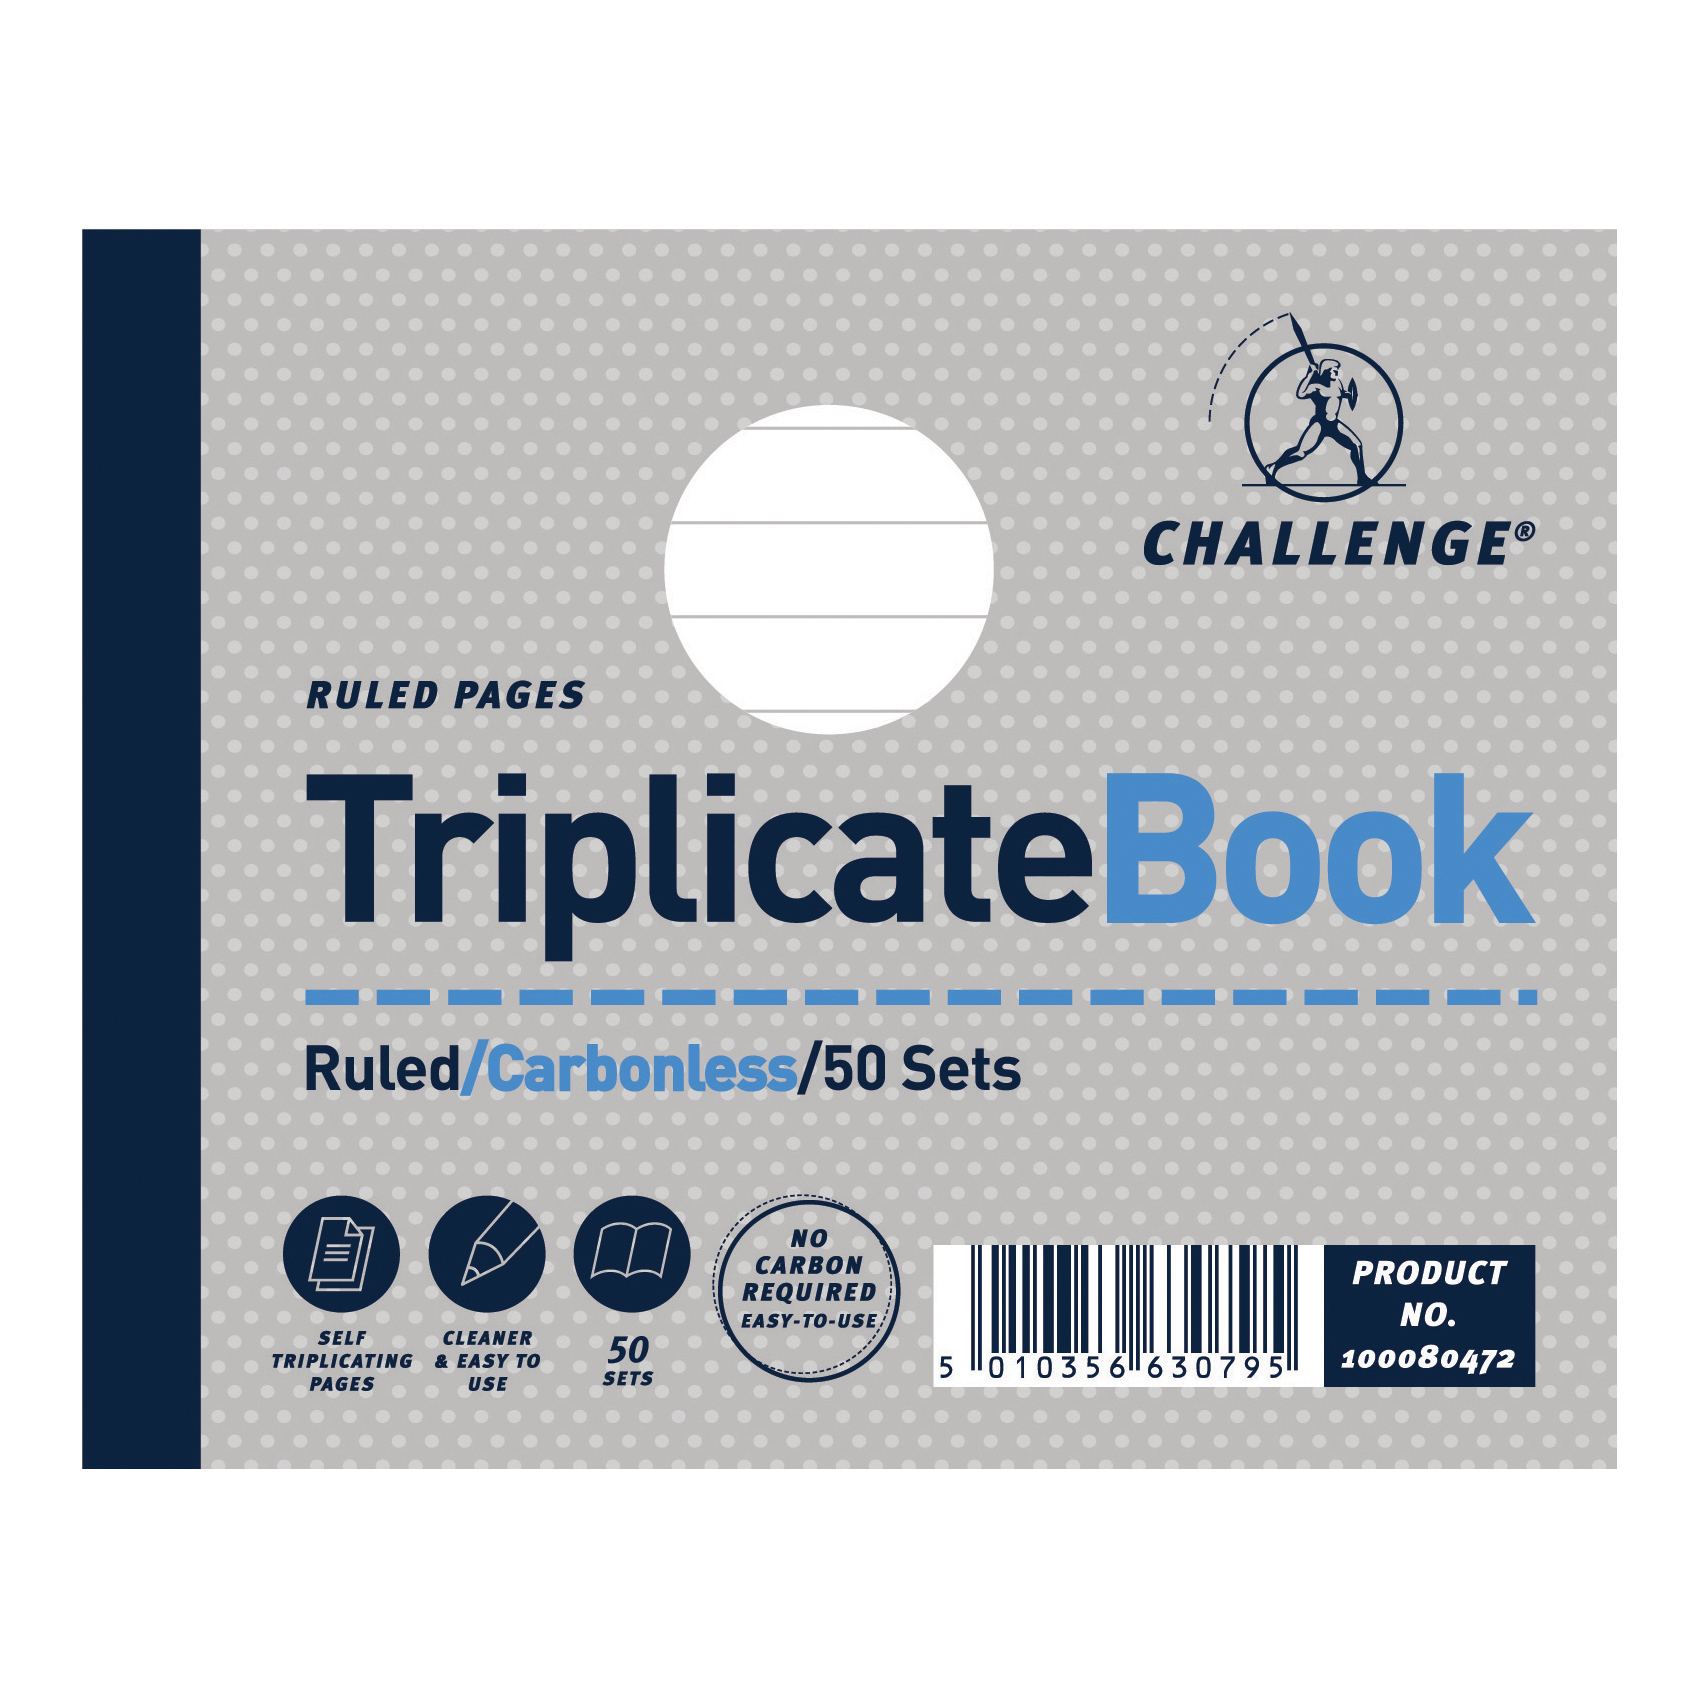 Challenge Triplicate Book Carbonless Wirebound Ruled 50 Sets 105x130mm Ref 100080472 Pack 5